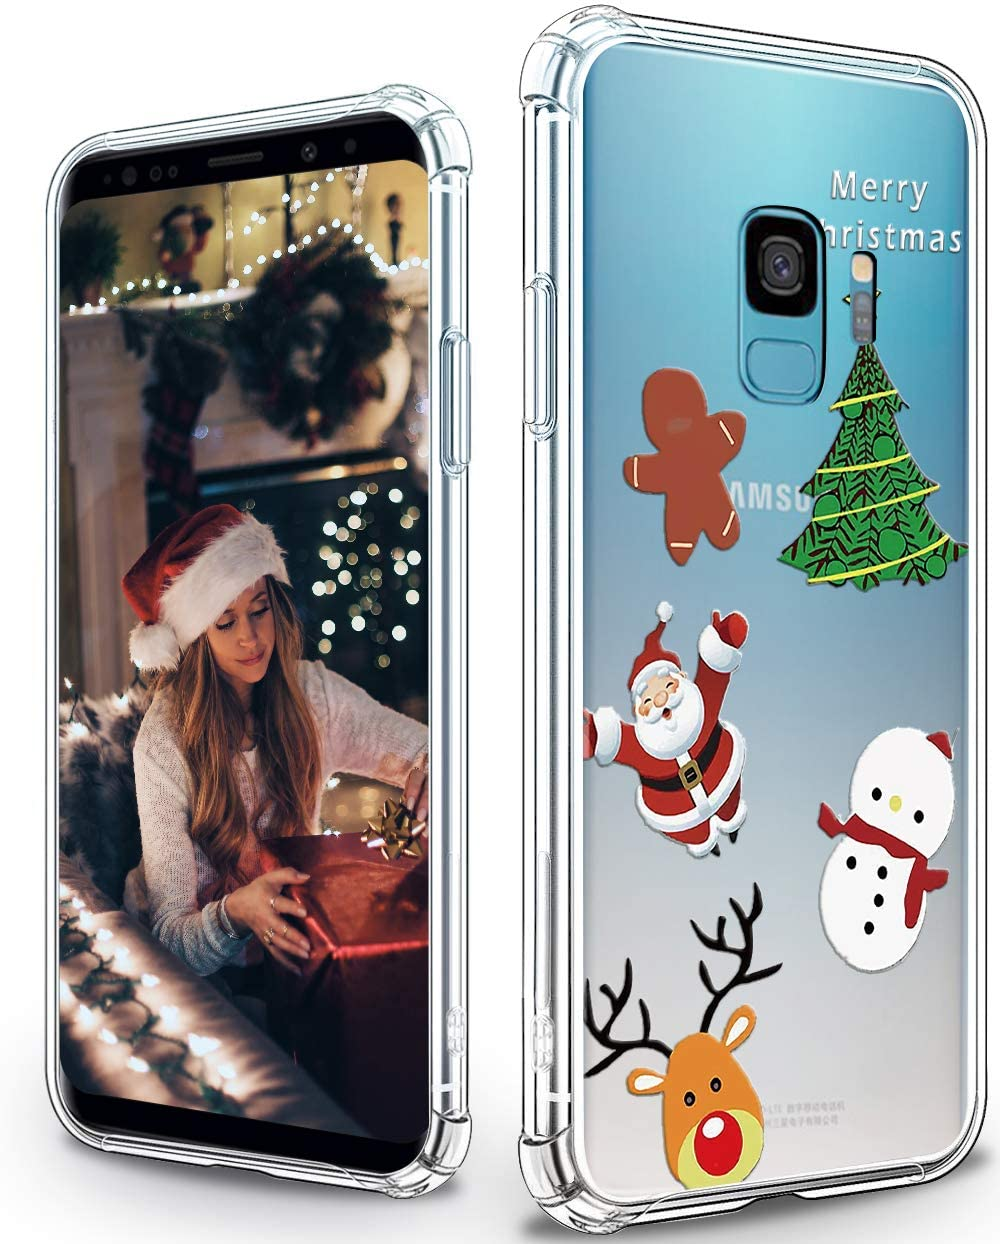 Cute Samsung Galaxy S9 Case with Christmas Pattern Soft Flexible TPU Shockproof Protective Bumper Case for Samsung Galaxy S9 - Christmas 3#